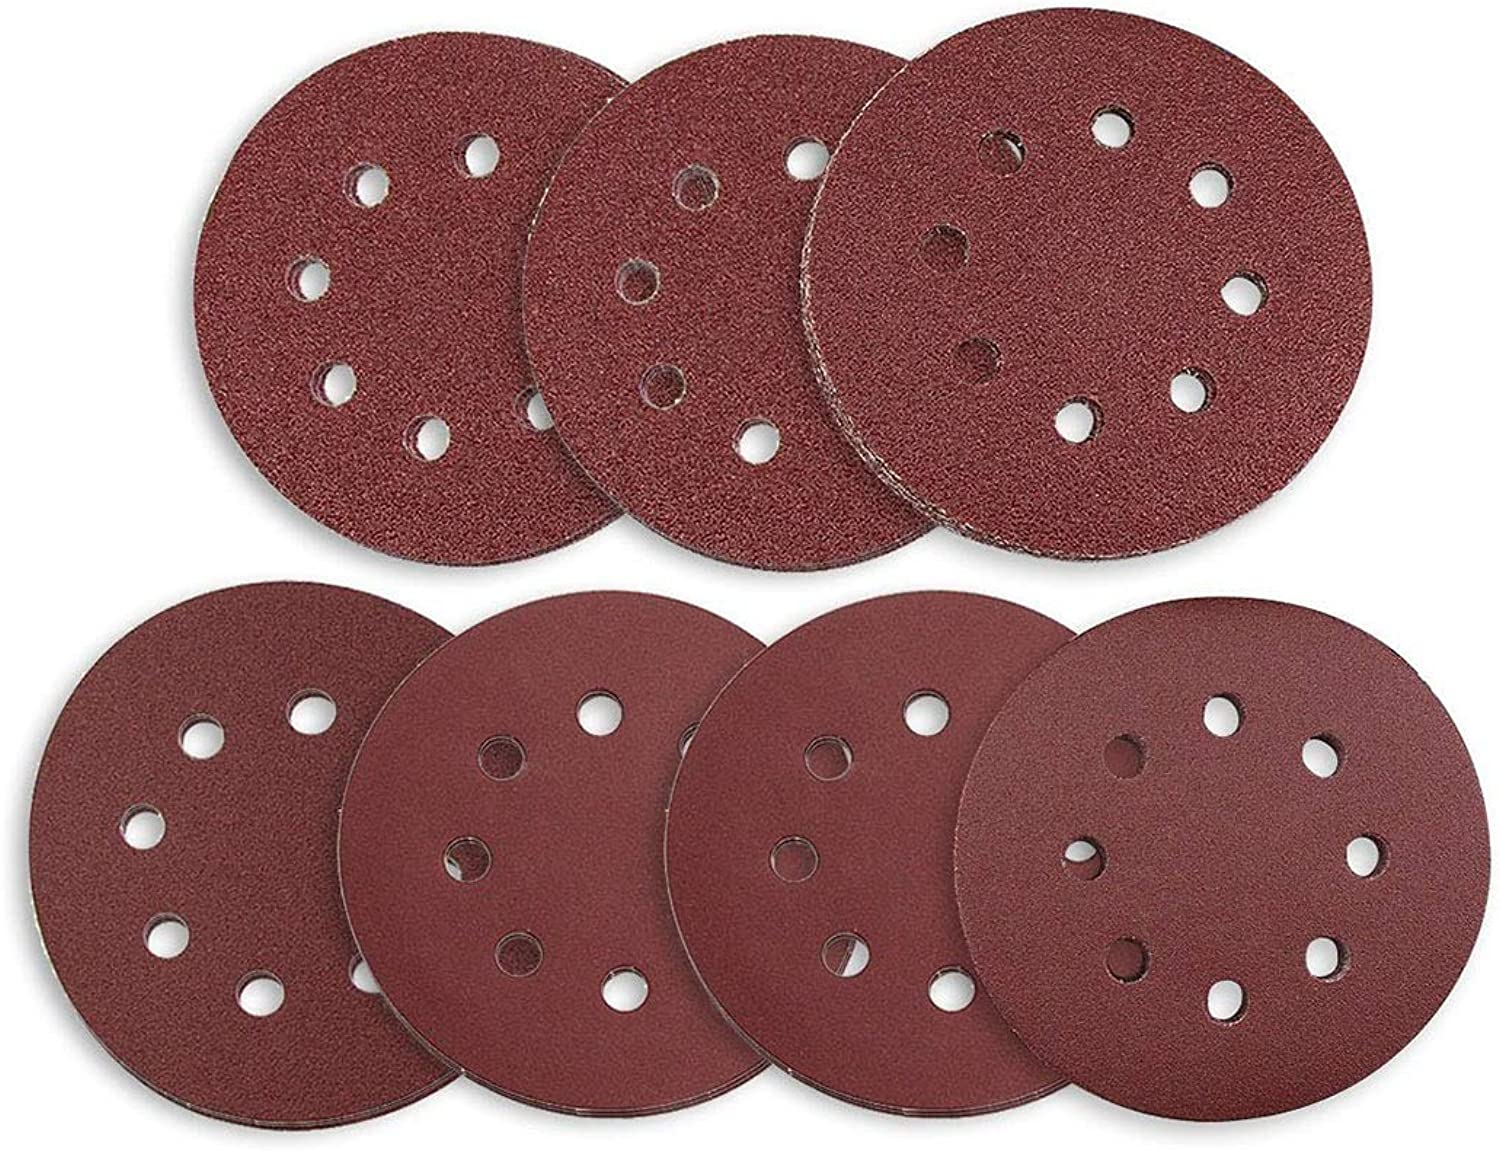 BIN BON  Hot Sale Sanding Discs 70 Pcs 8 Holes 5 Inch Sandpaper Circular Dustless Hook and Loop 60 80  120 180  240 320  400 Grit As